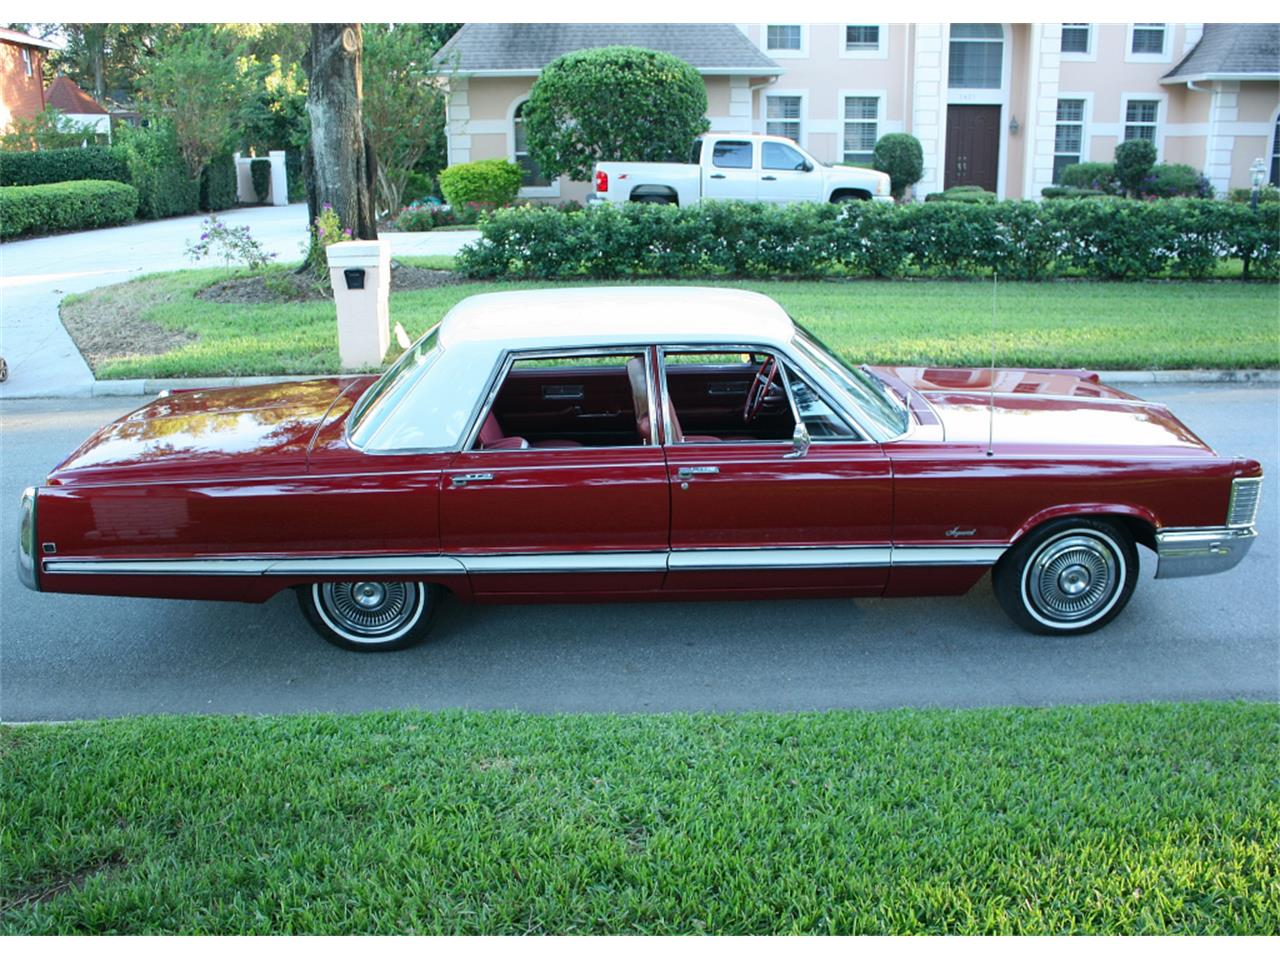 Large Picture of 1968 Chrysler Imperial Offered by MJC Classic Cars - MA1H